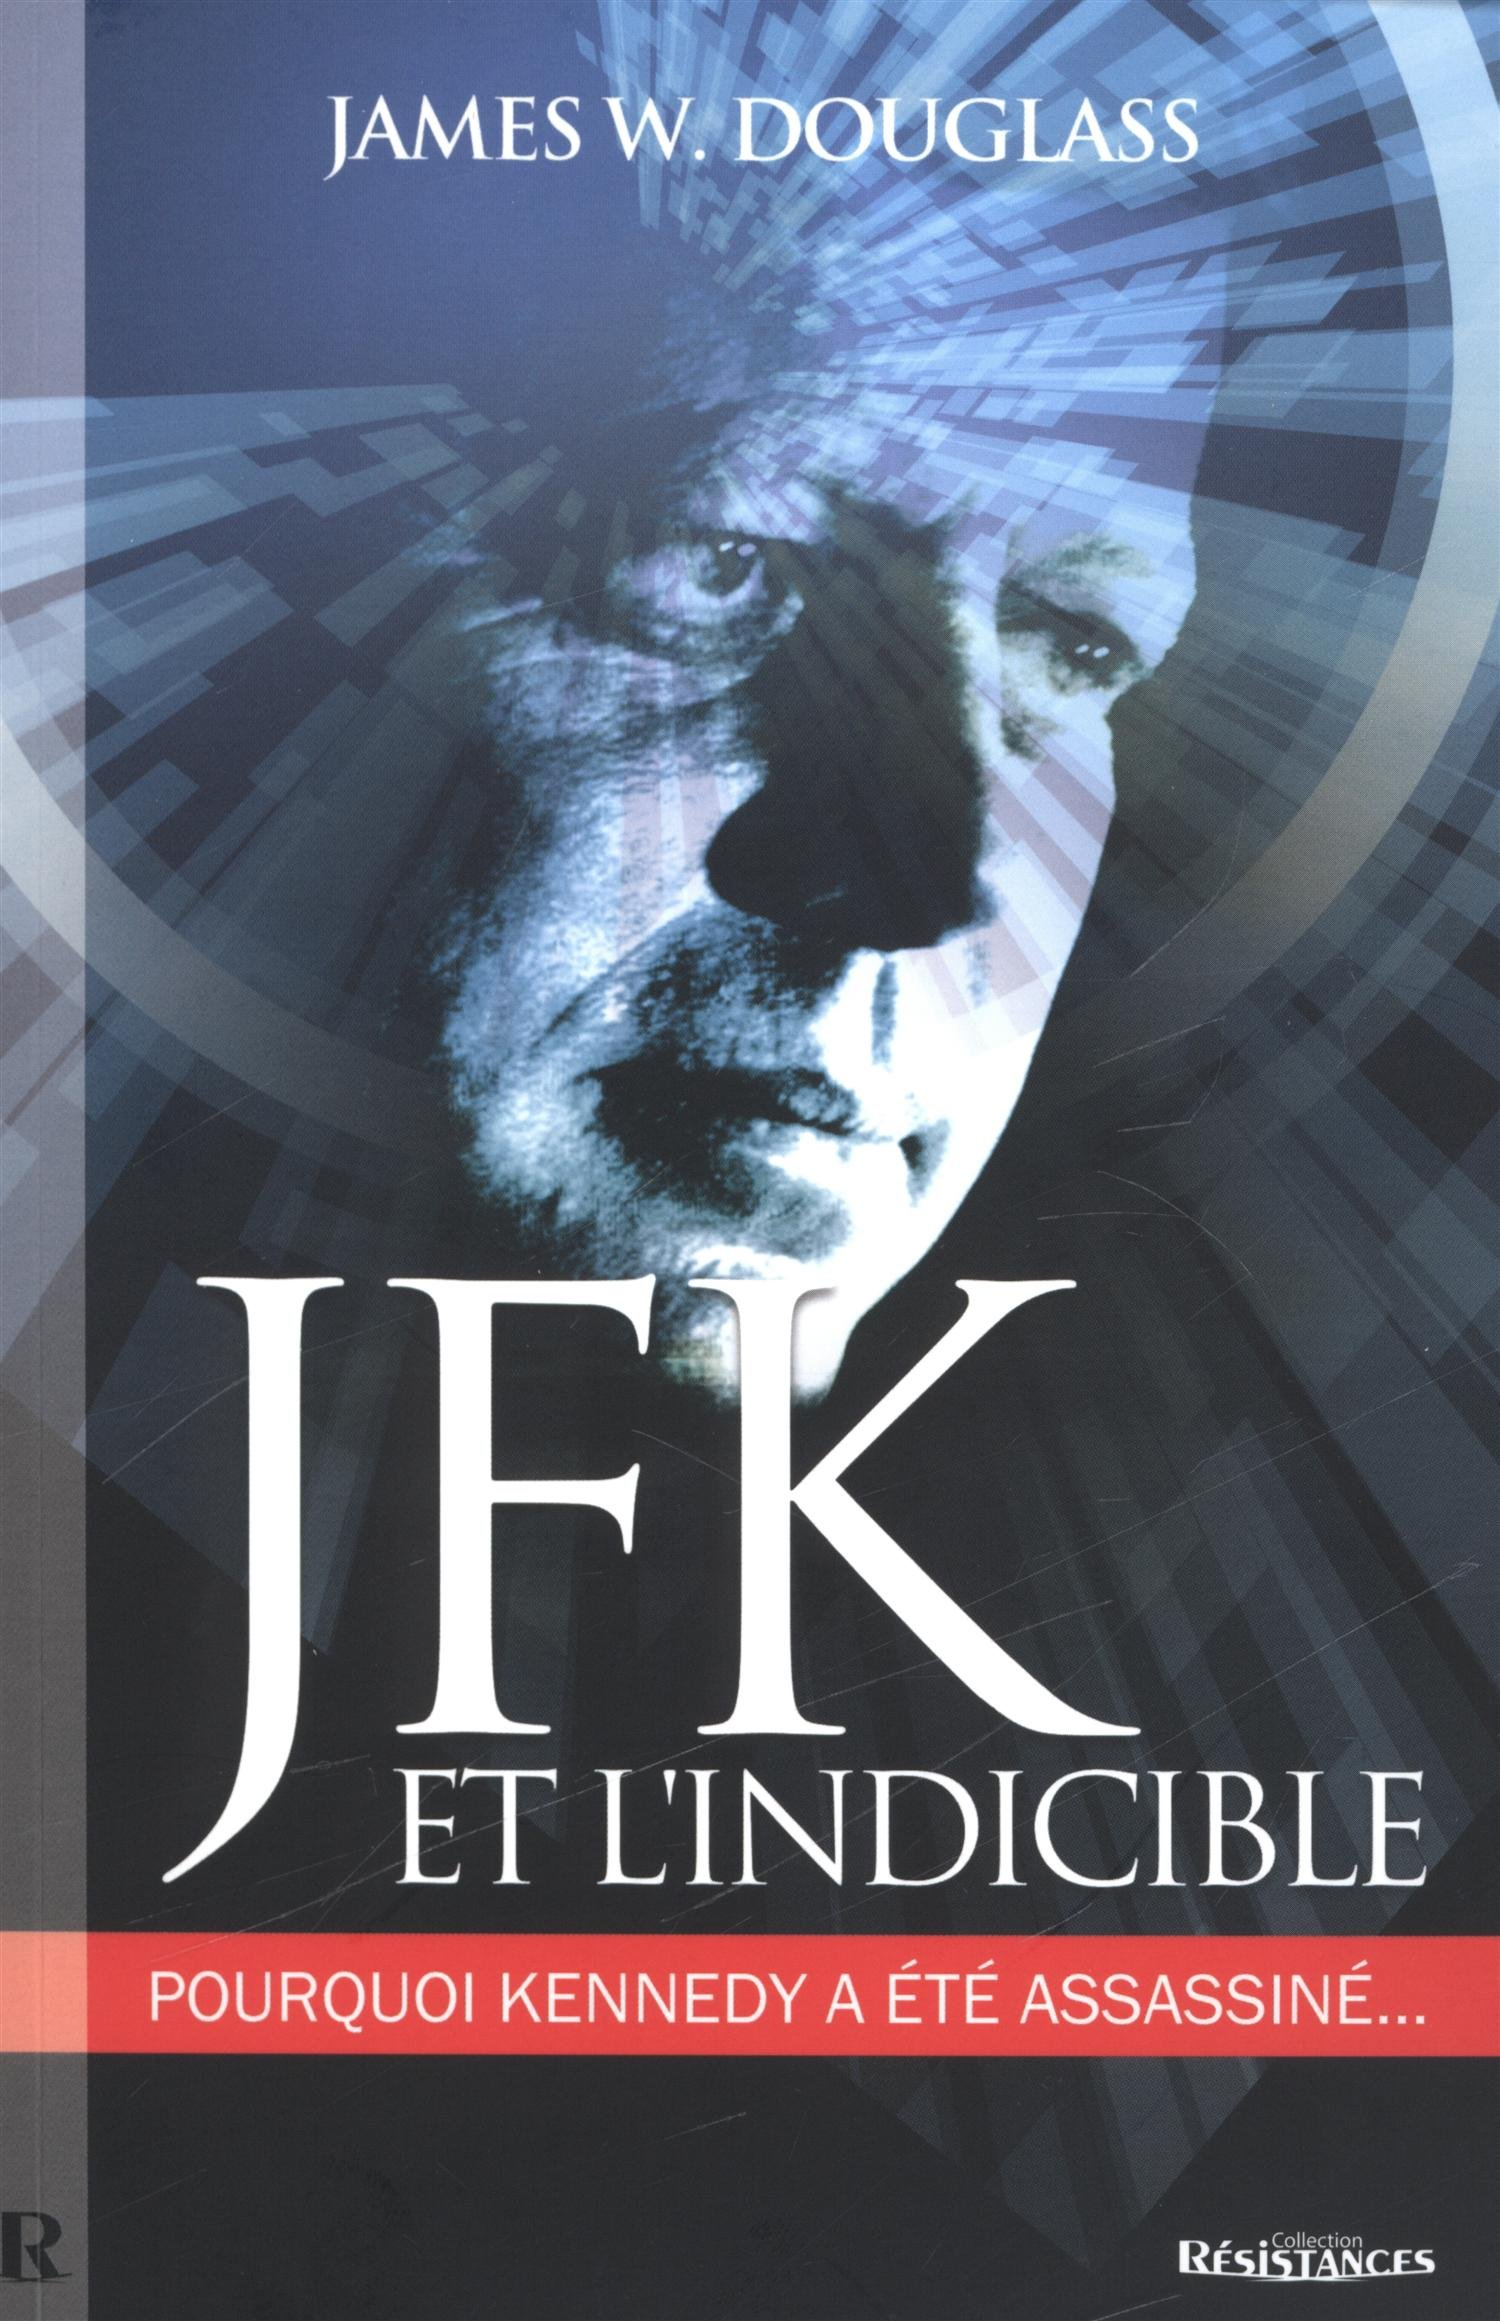 jfk lindicible